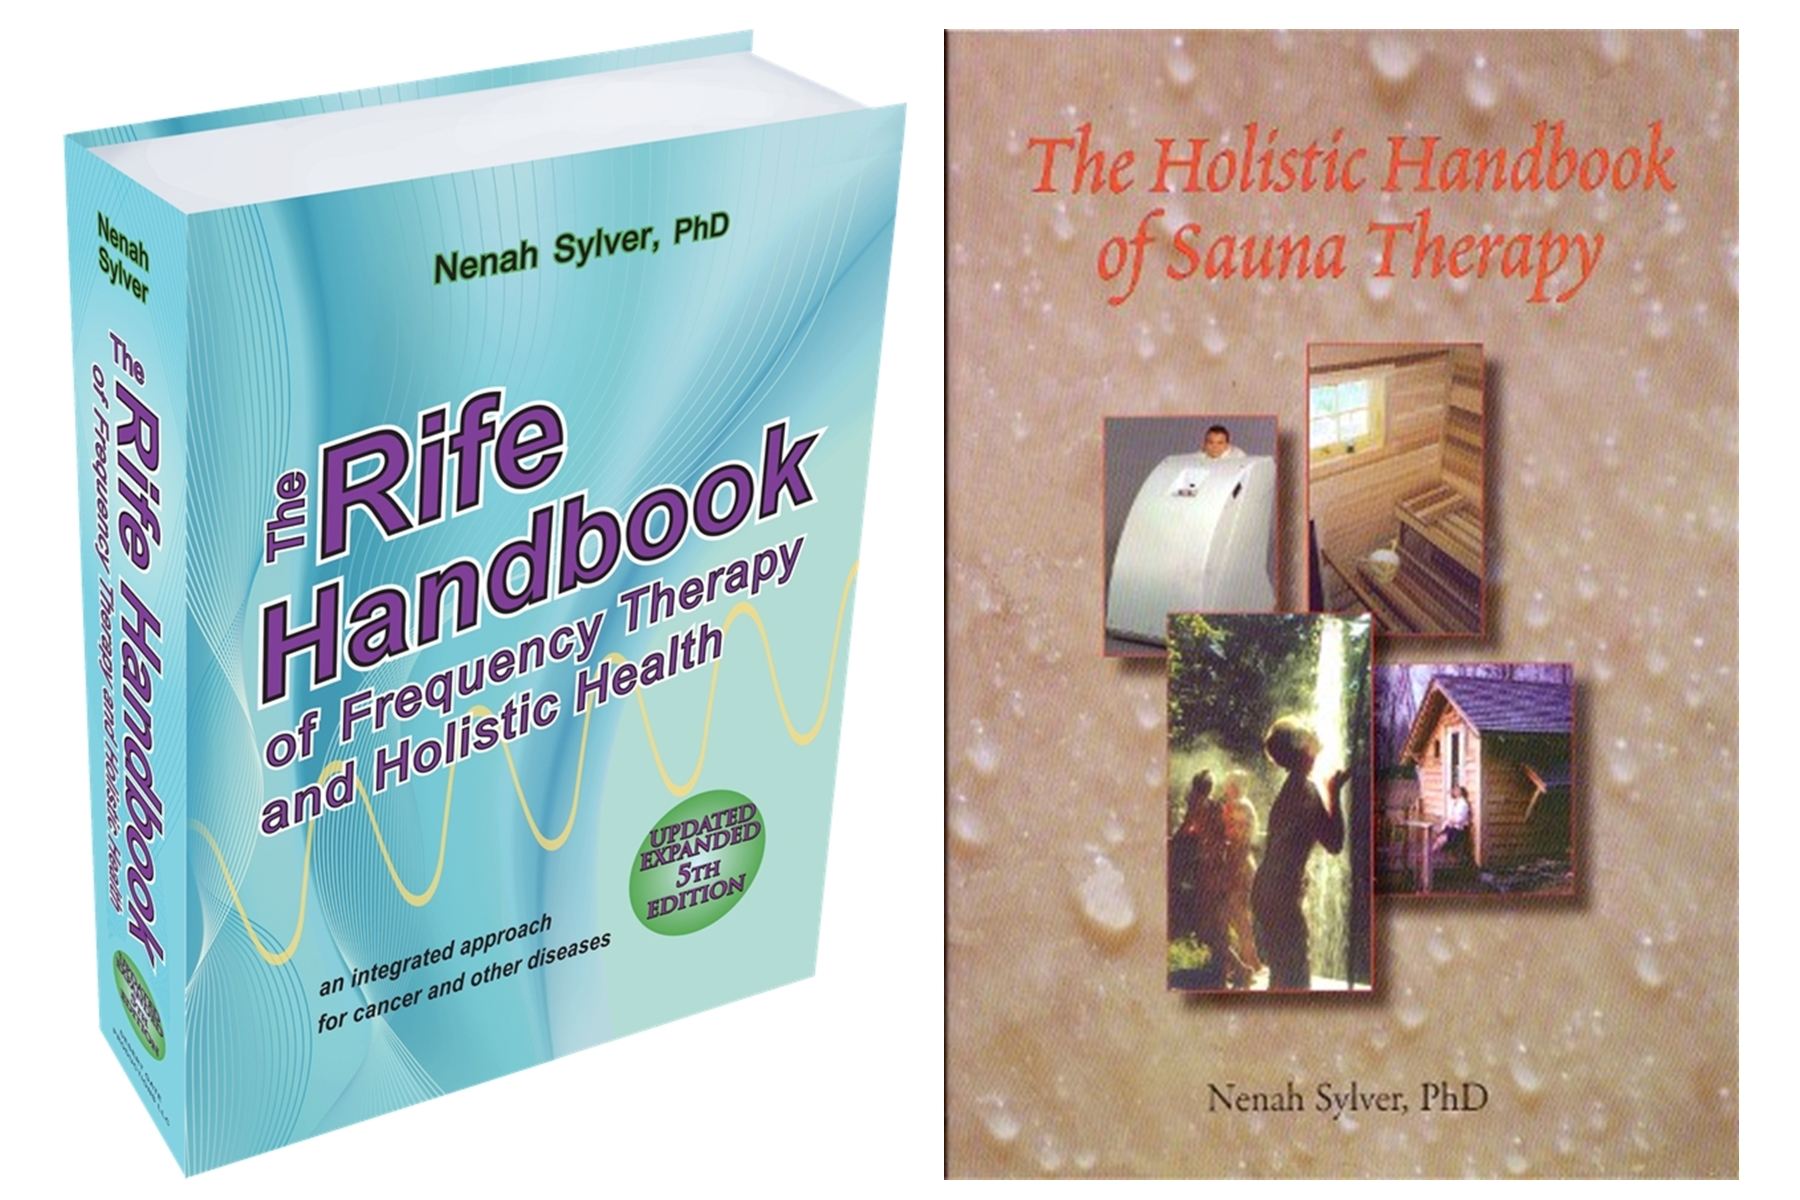 Image for Rife Frequency Healing Book 5th Edition AND The Holistic Handbook of Sauna Therapy (2 Book Special)